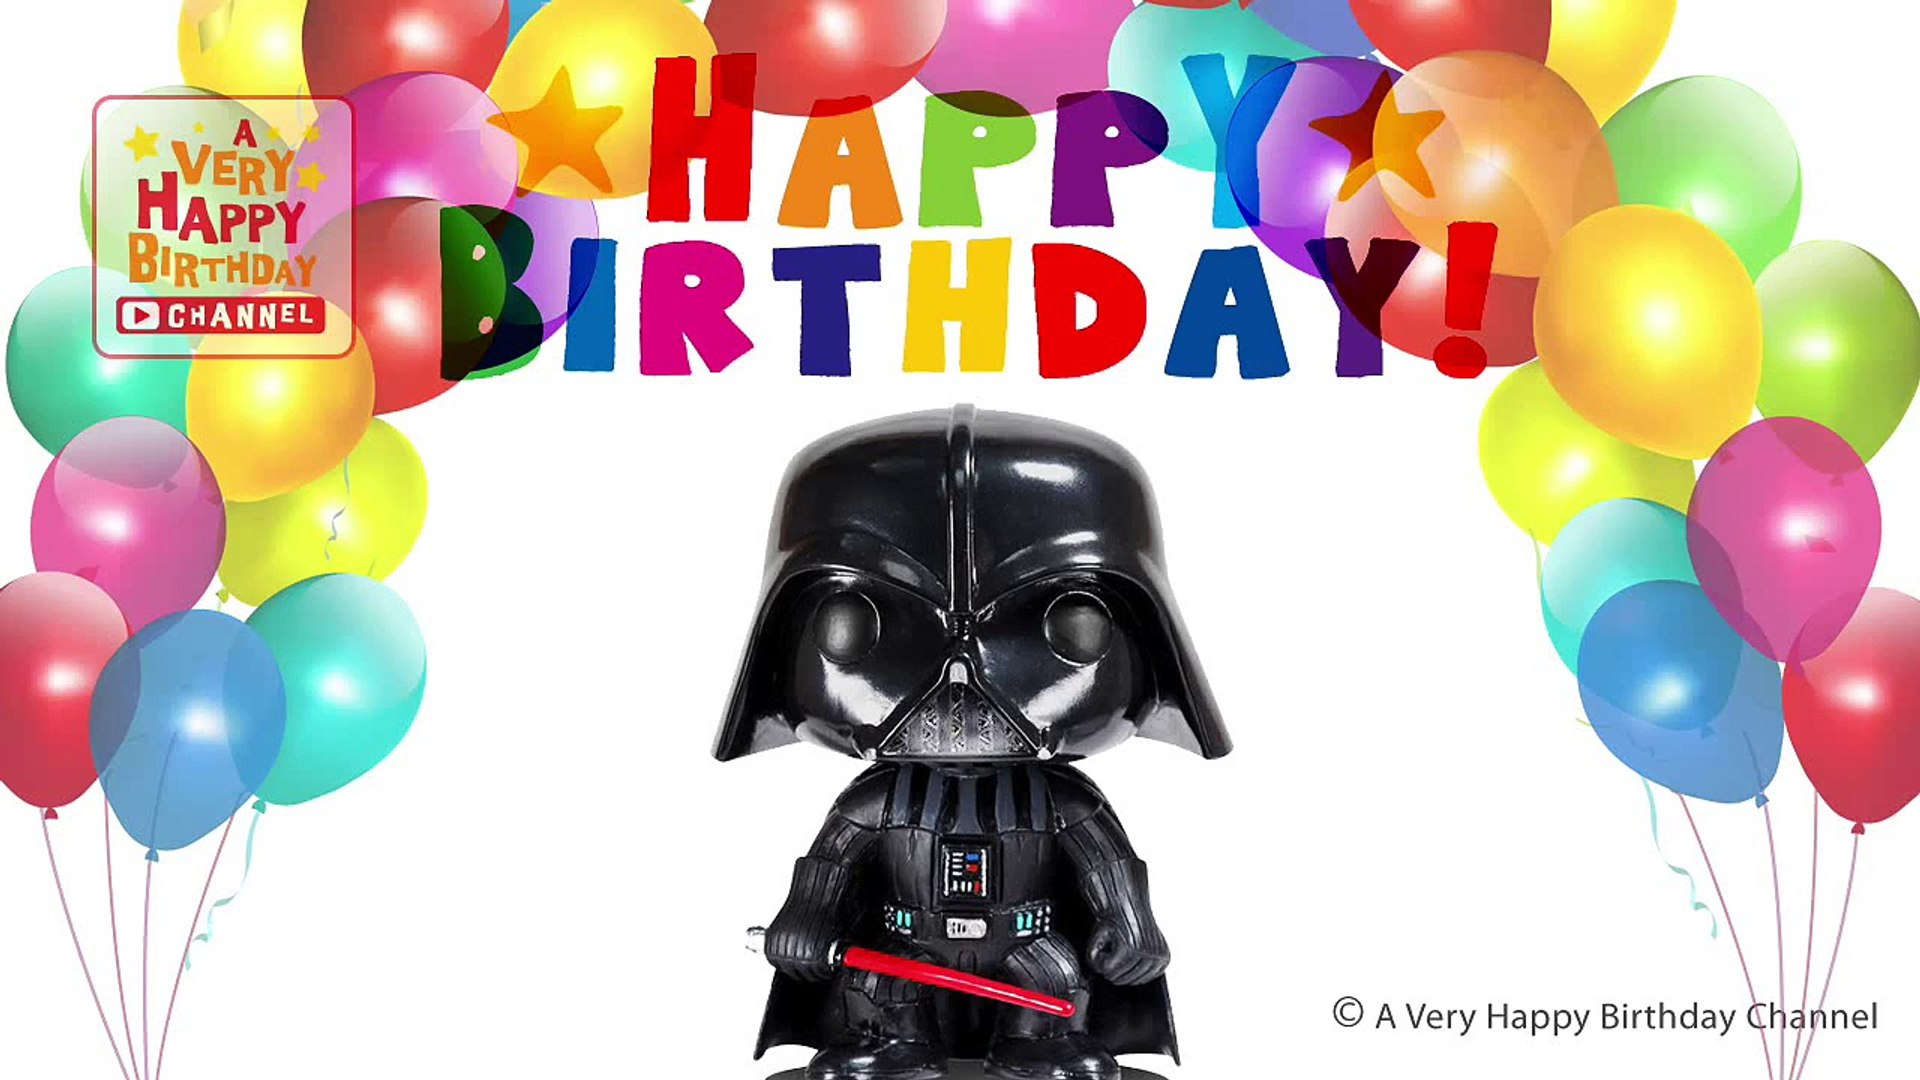 Darth Vader Sings Happy Birthday Song Greetings Star Wars Theme Party Celebration Dailymotion Video